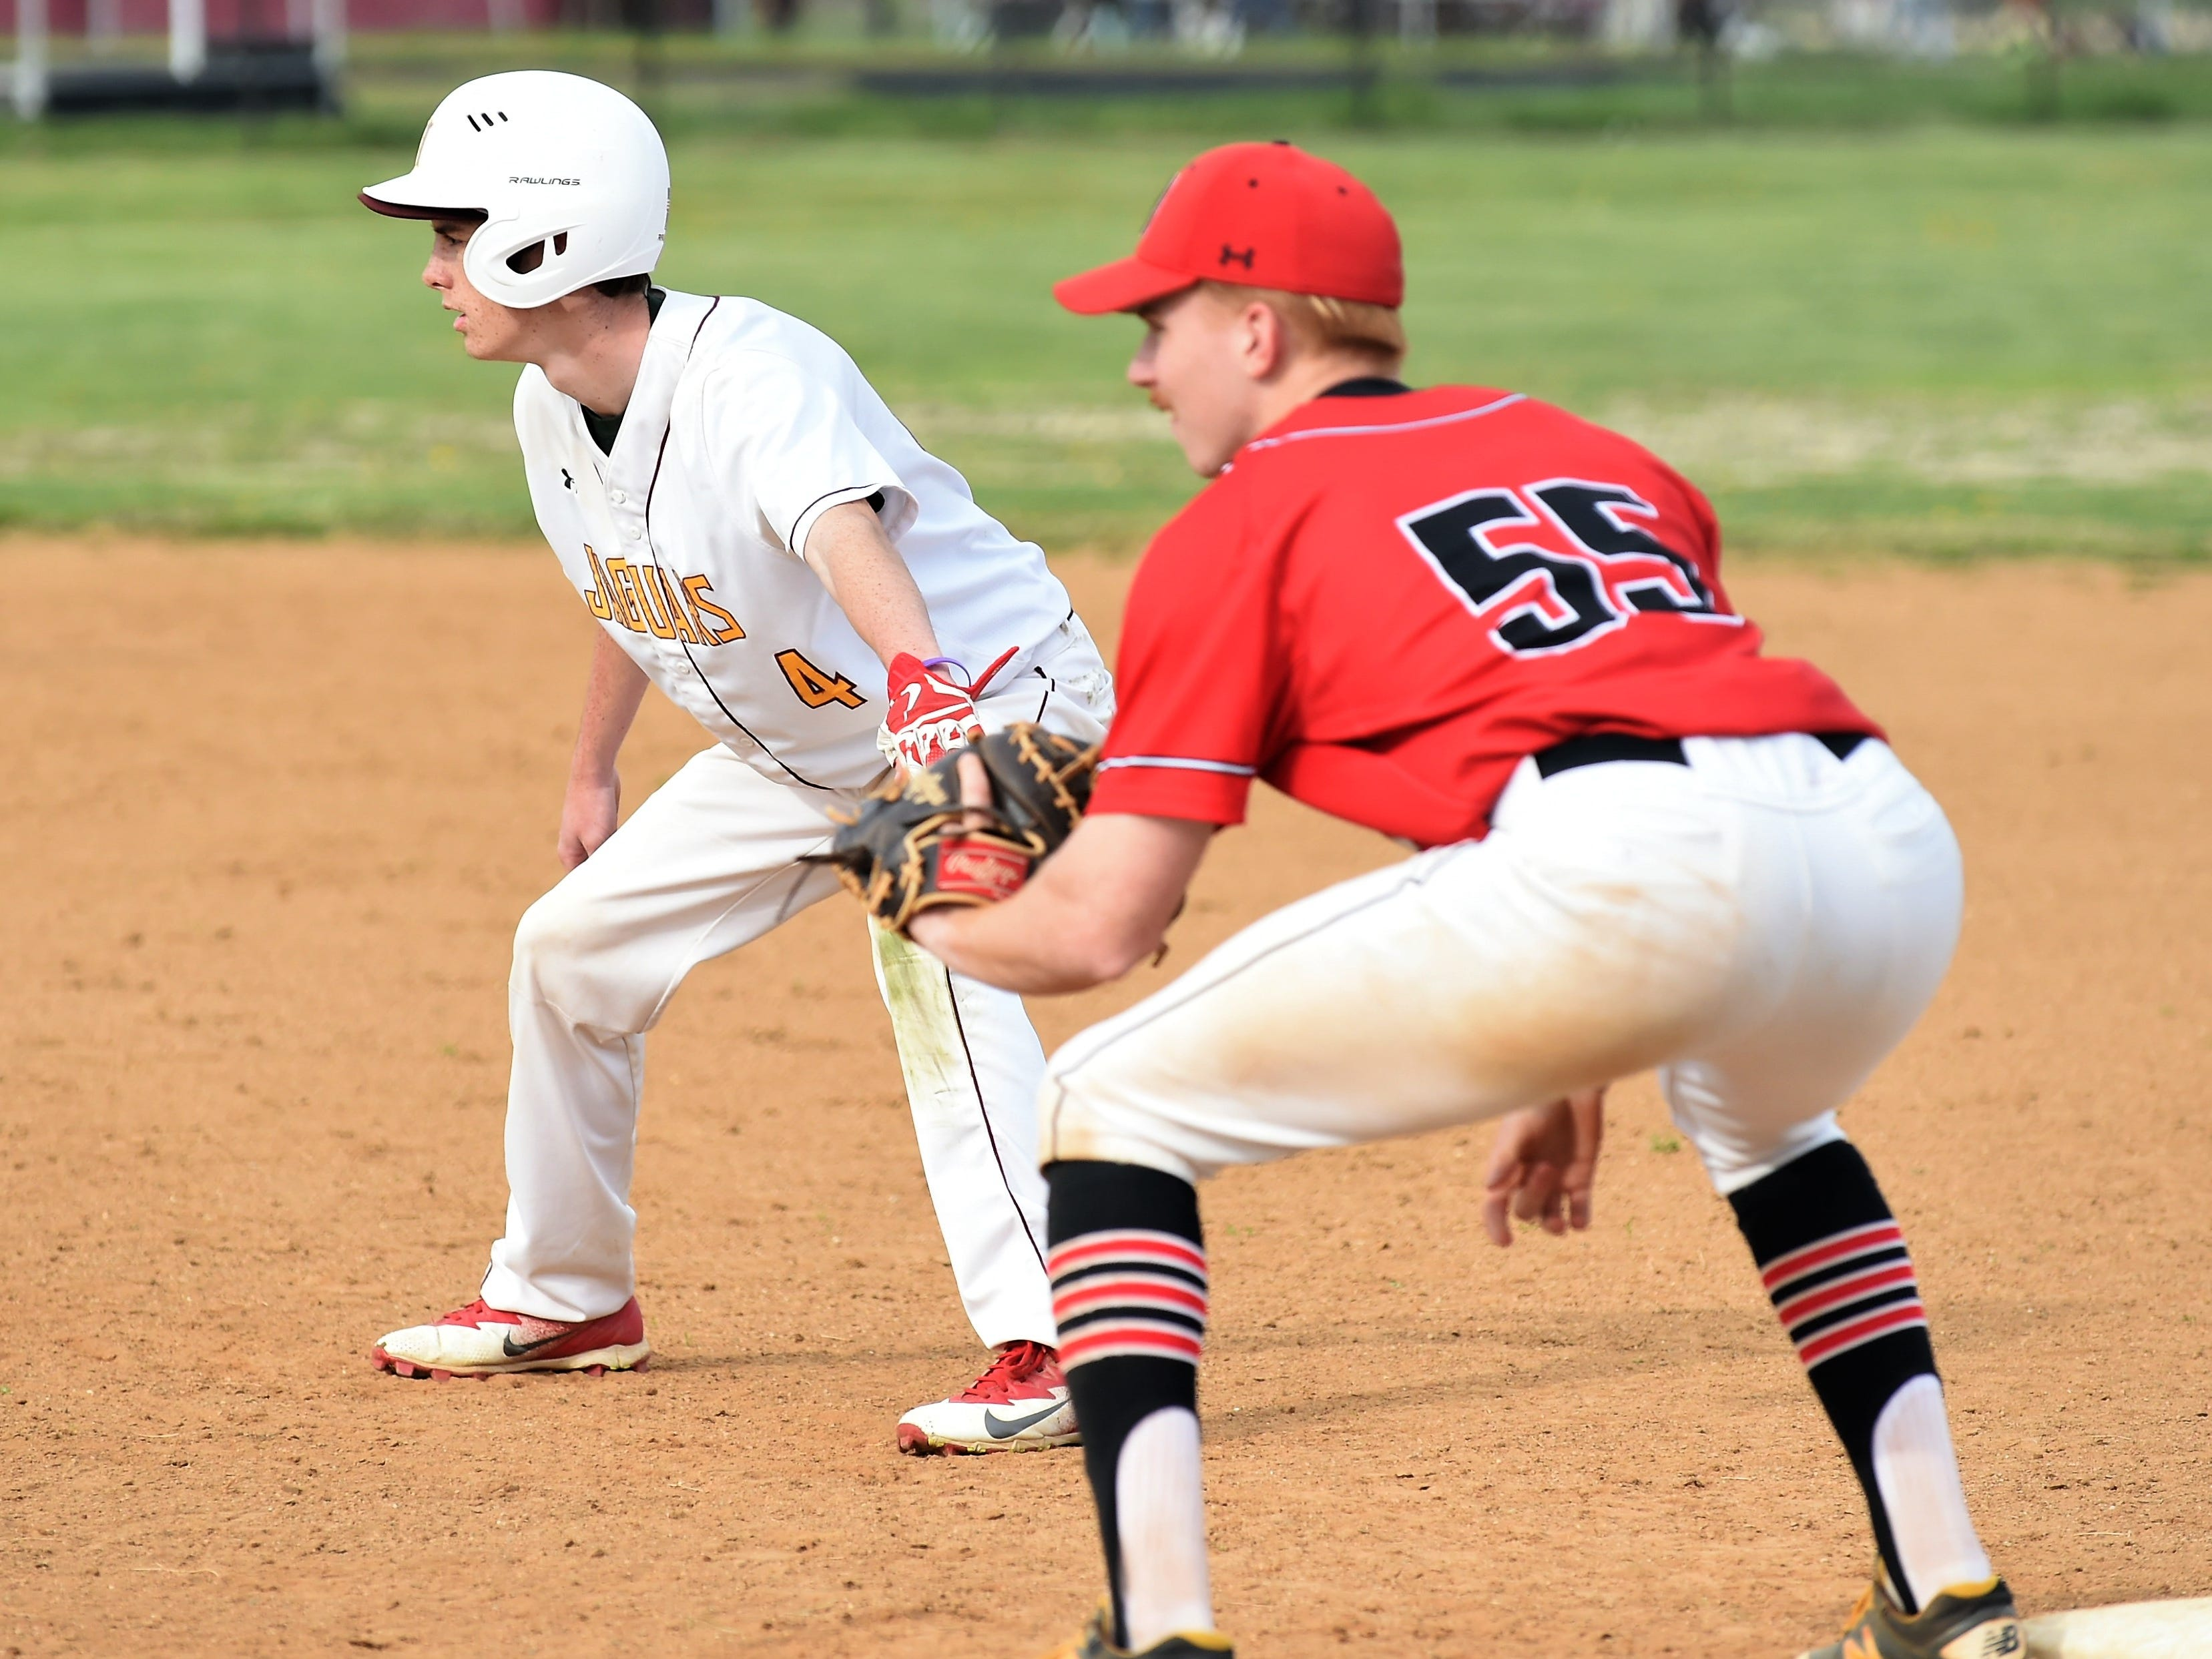 Washington outfielder Ryan Hungerford leads off as James M. Bennett's Max Taylor looks to the mound on Thursday, April 11, 2019. JMB won, 13-2.